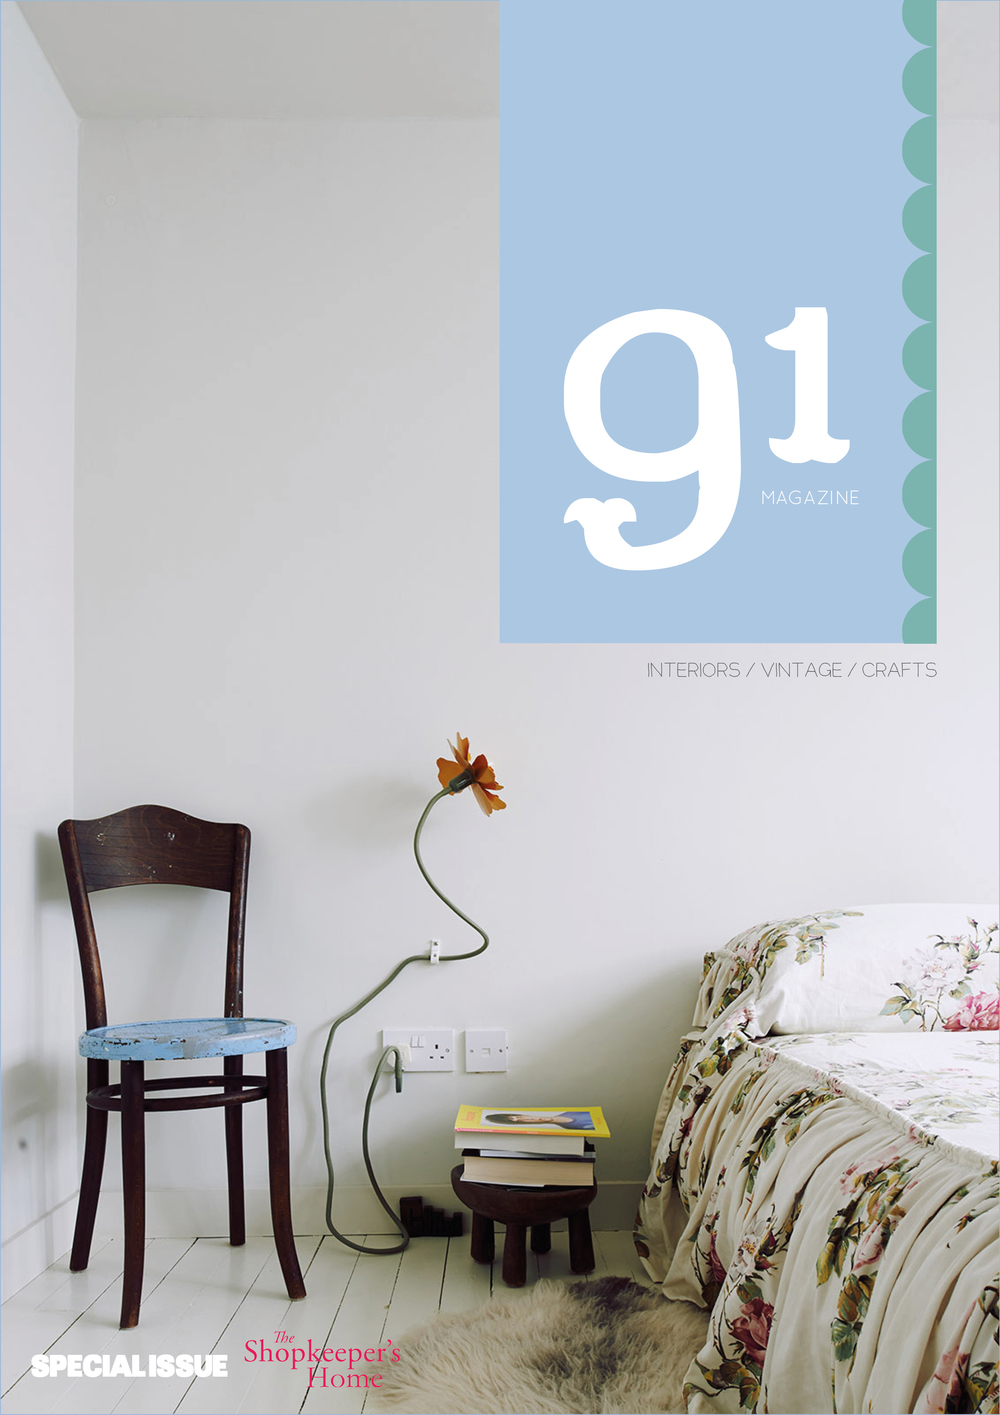 my book: special issue of 91 Magazine